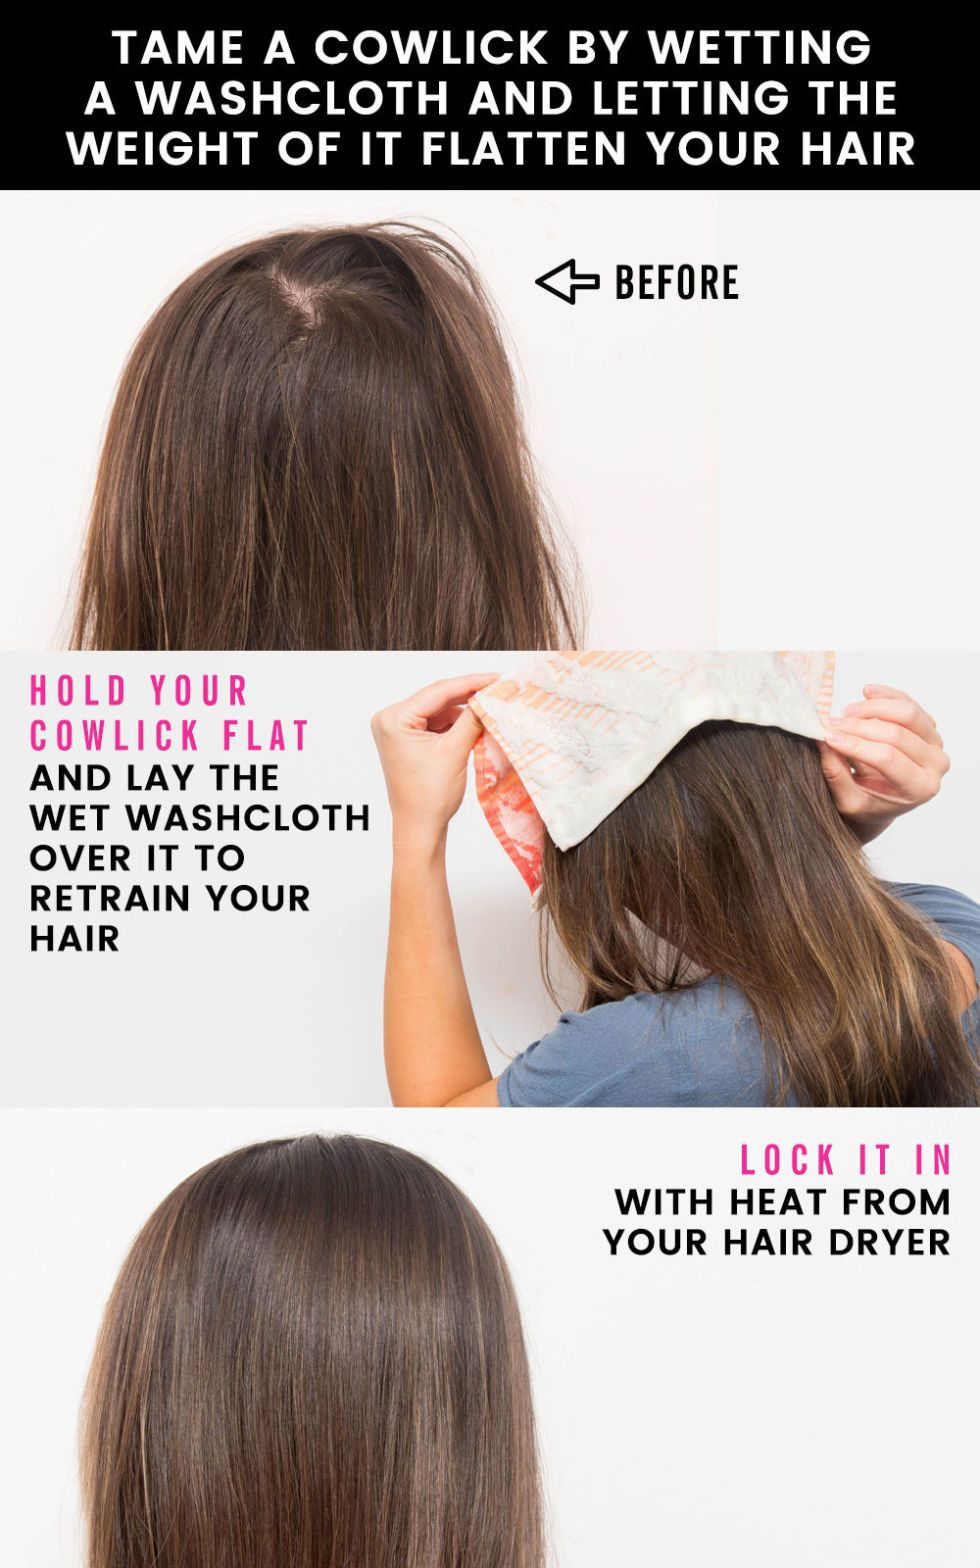 22 life-saving beauty hacks to use when you're already late